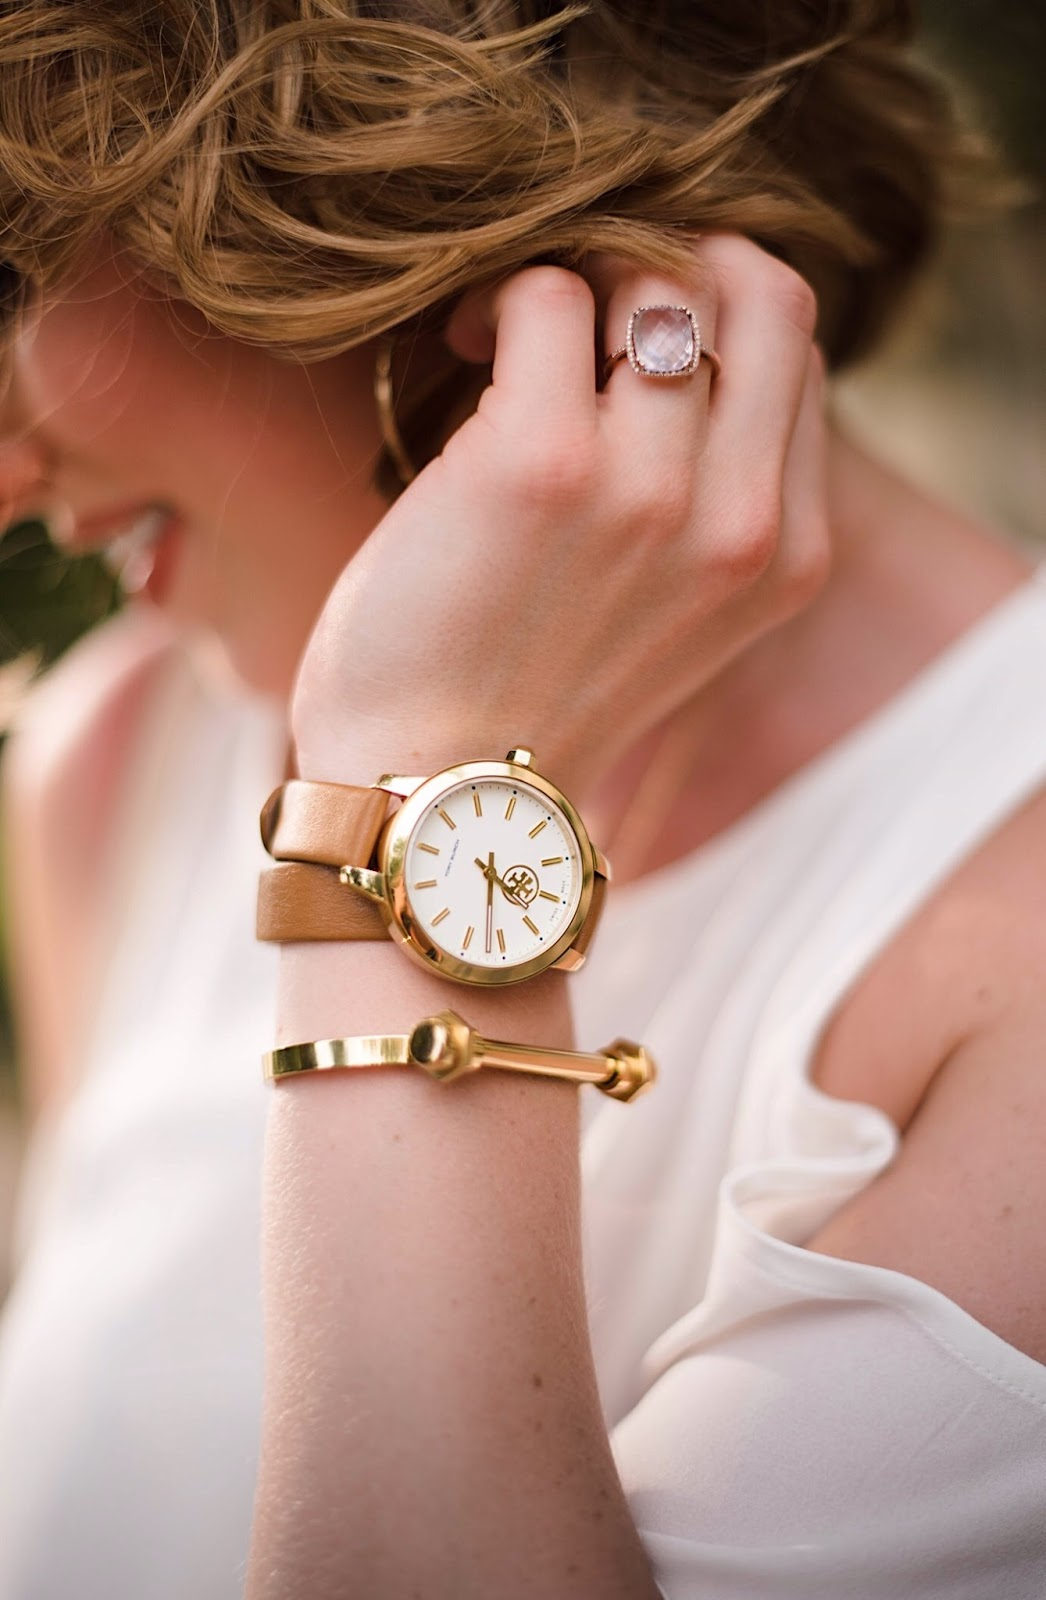 Tory Burch Watch - Click through to see more on Something Delightful Blog!